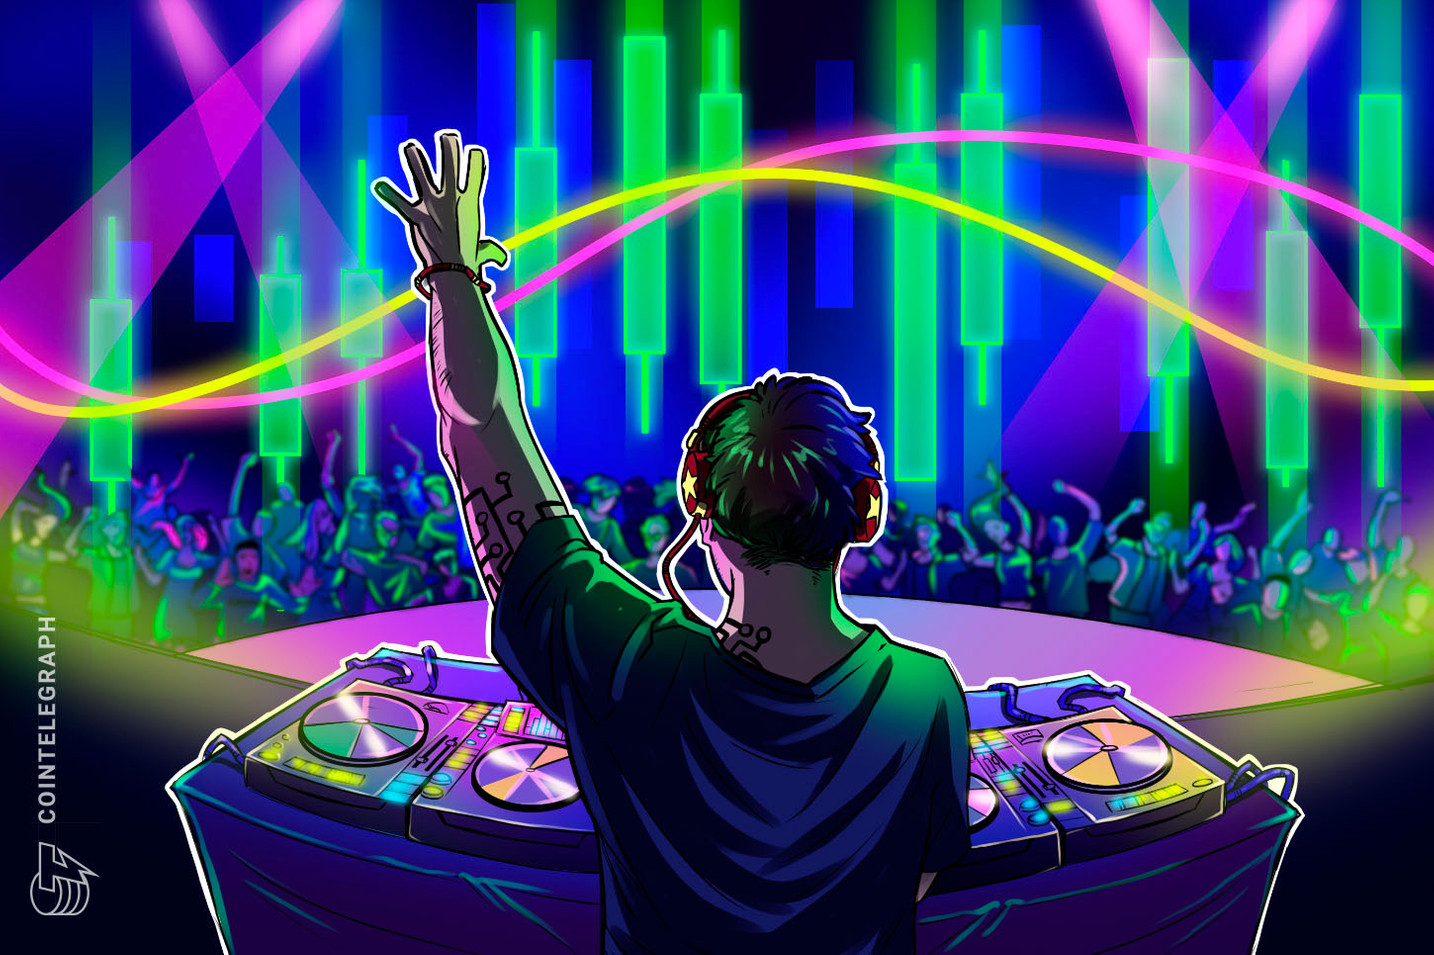 Top bidder at Ultraviolet NFT auction can collaborate with 3LAU on new music